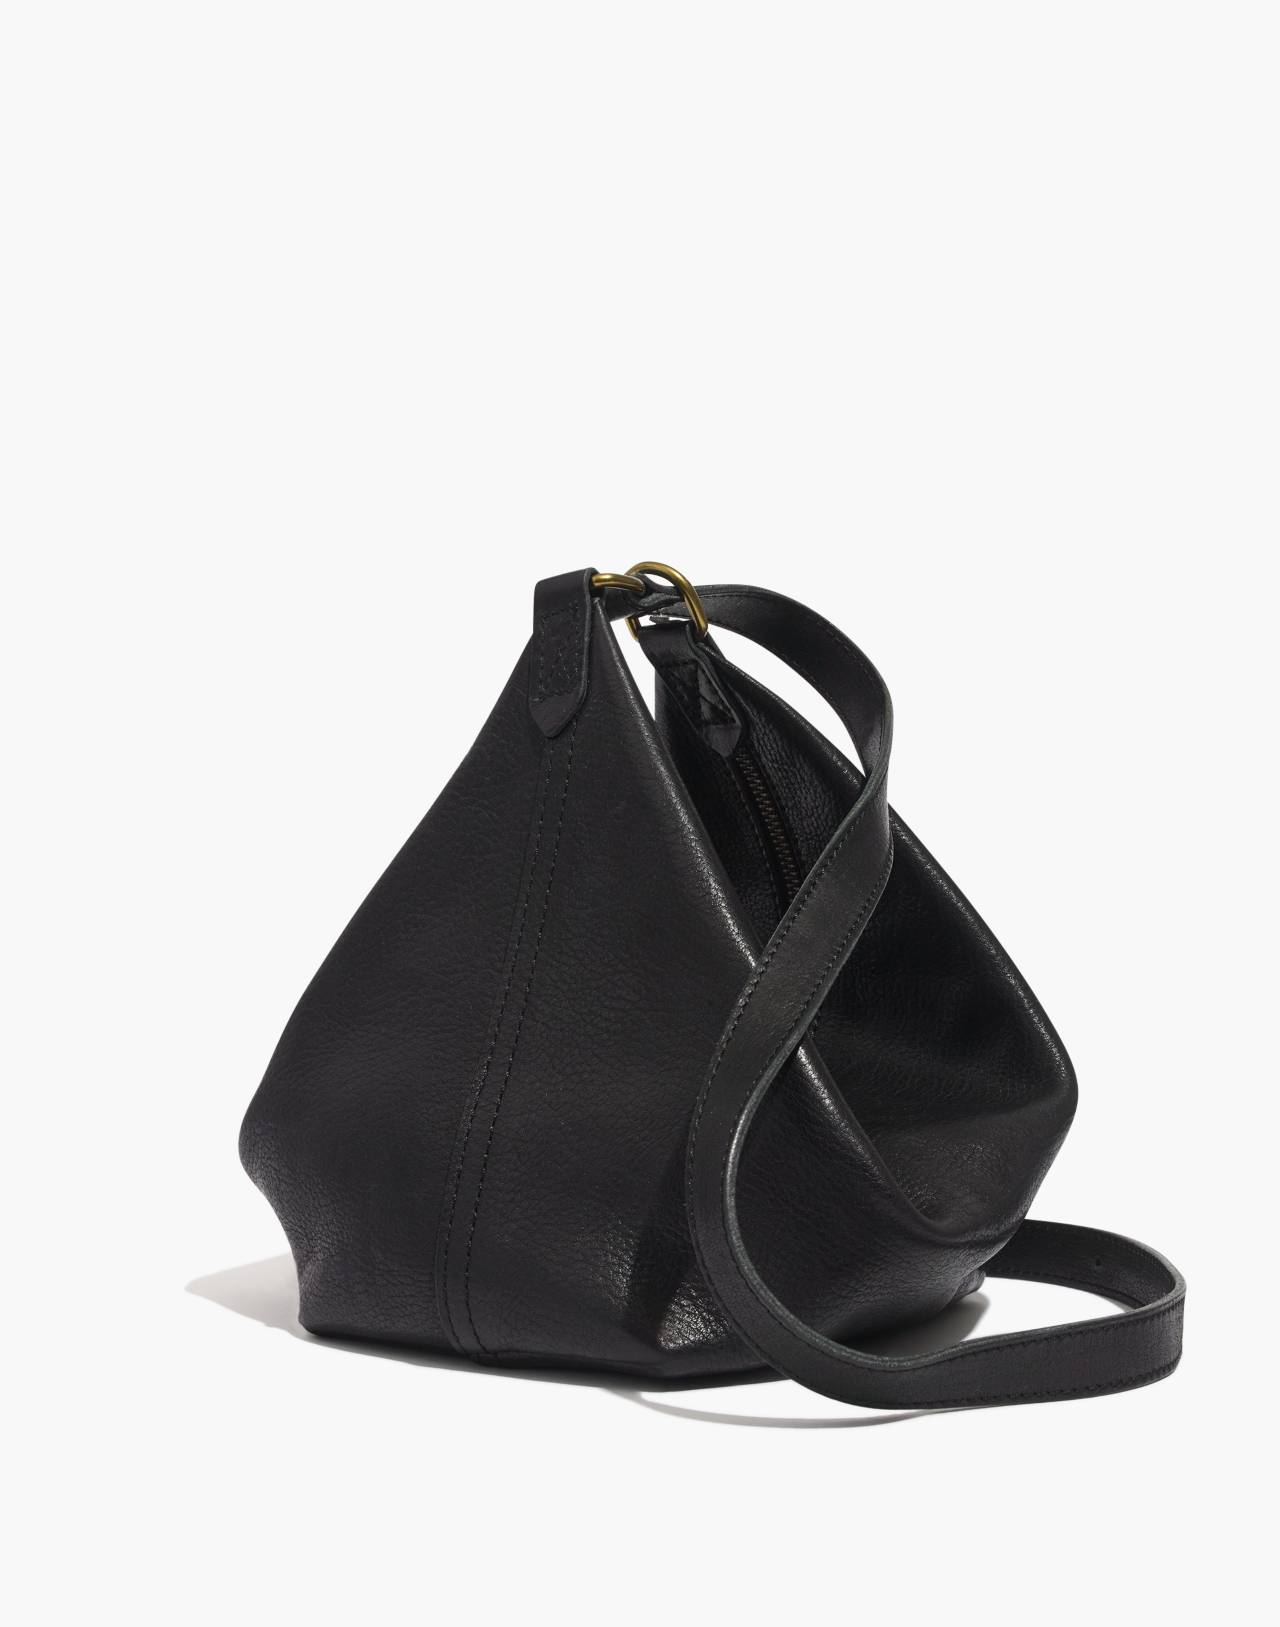 The Leather Sling Bag in true black image 1